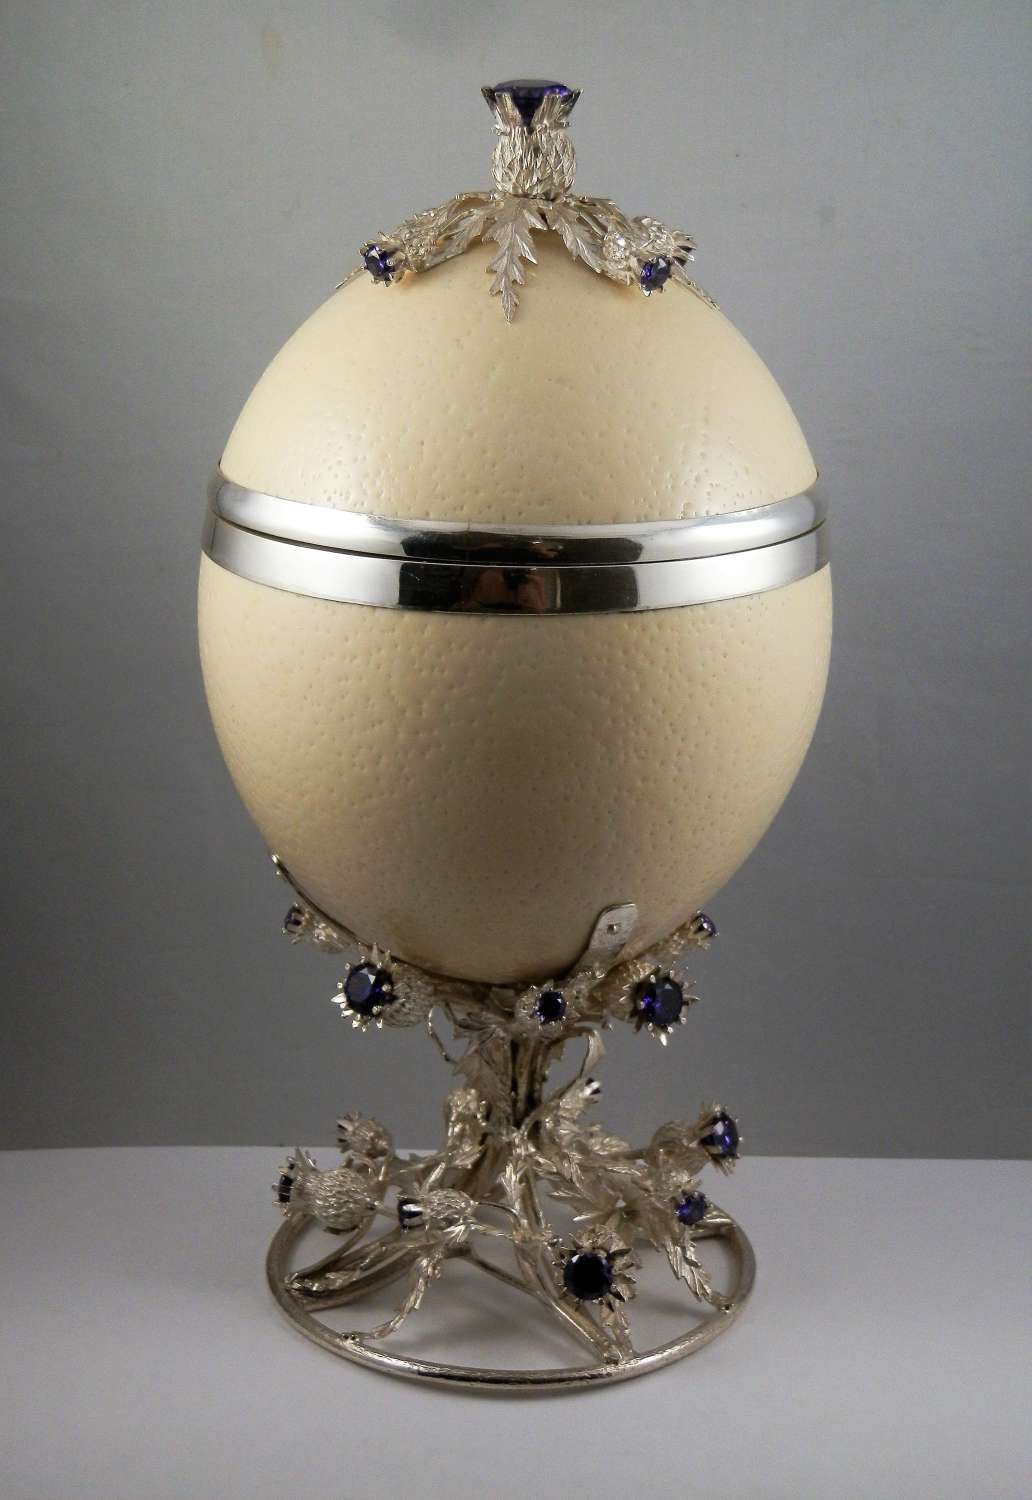 Silver mounted Ostrich egg, Edinburgh, 2019